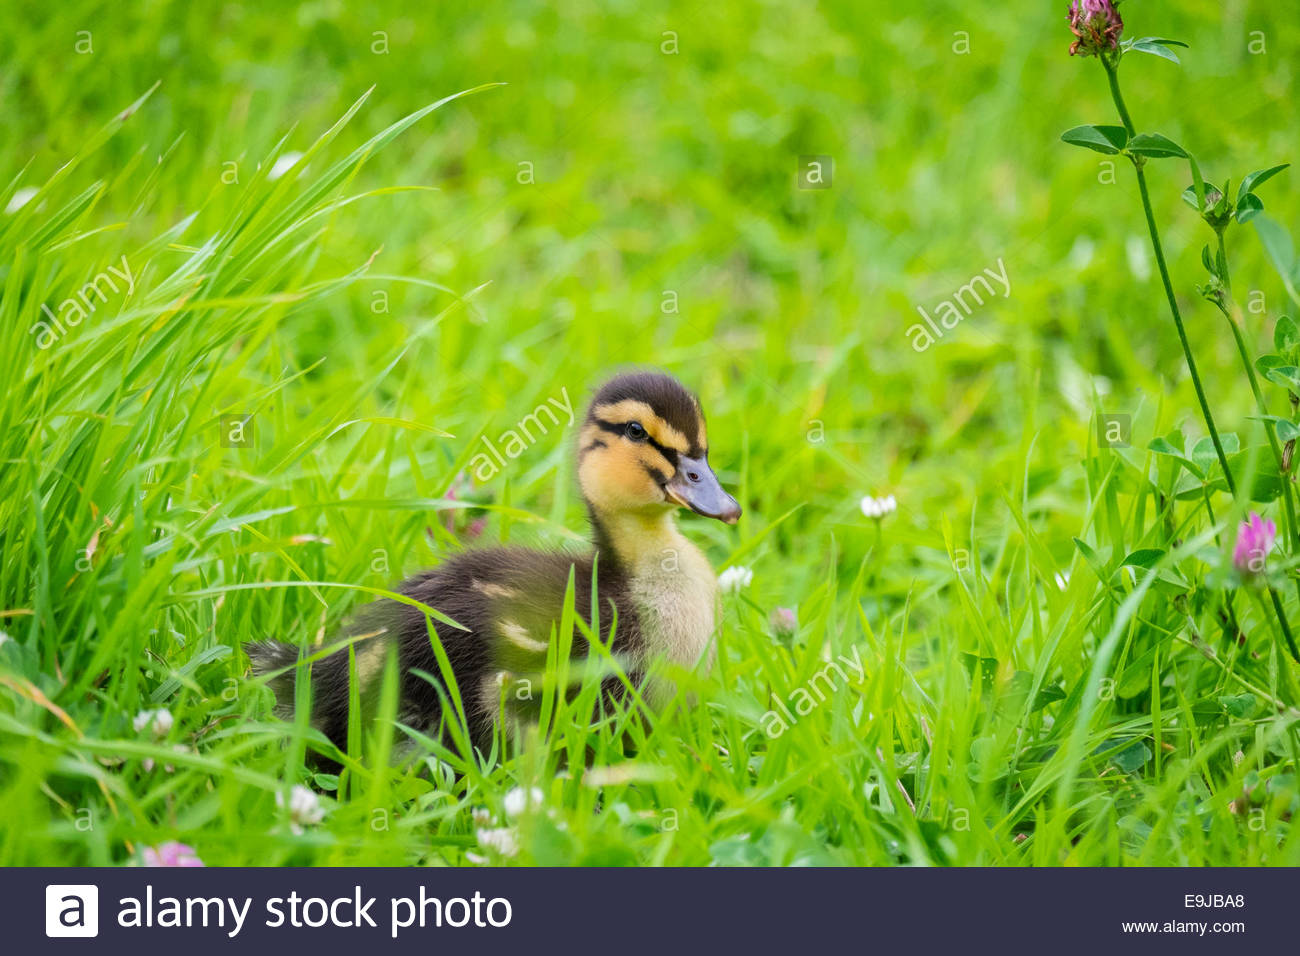 Young baby duck, ten day old duckling in the grass, La Creuse, Limousin, France - Stock Image